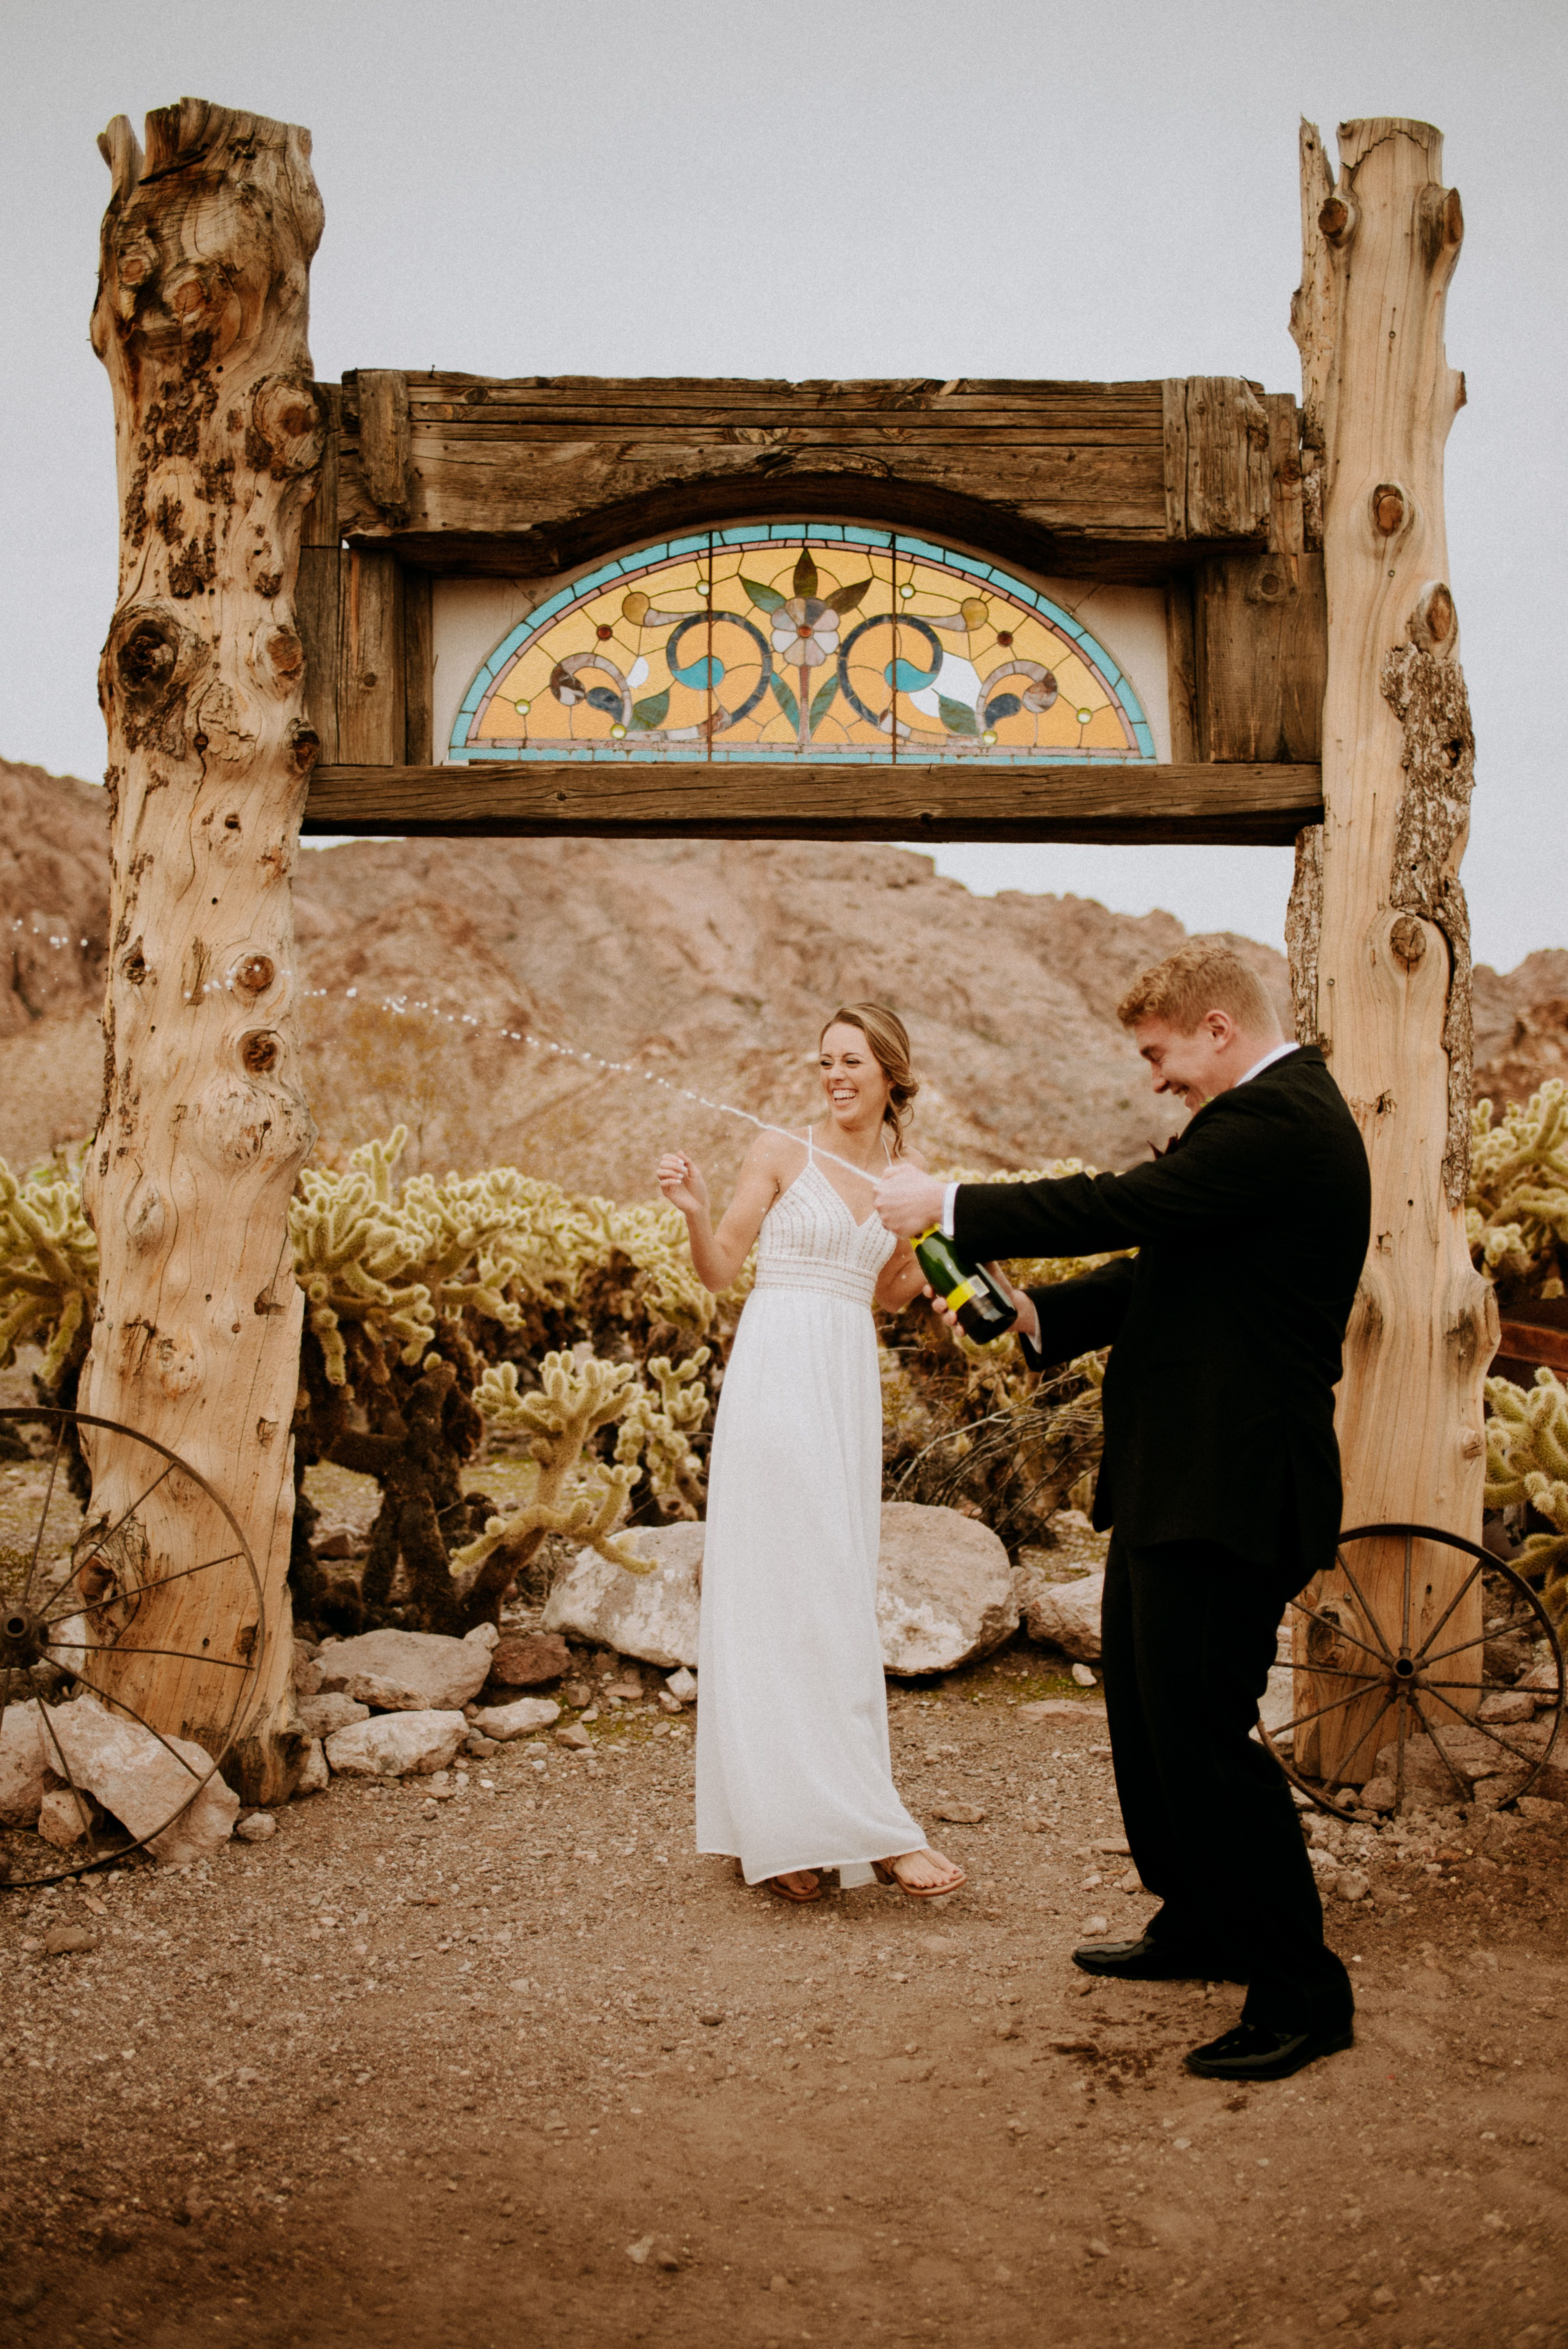 Eloping In Vegas Check Out Our Las Vegas Elopement Packages In 2020 Las Vegas Elopement Photographer Las Vegas Elopement Las Vegas